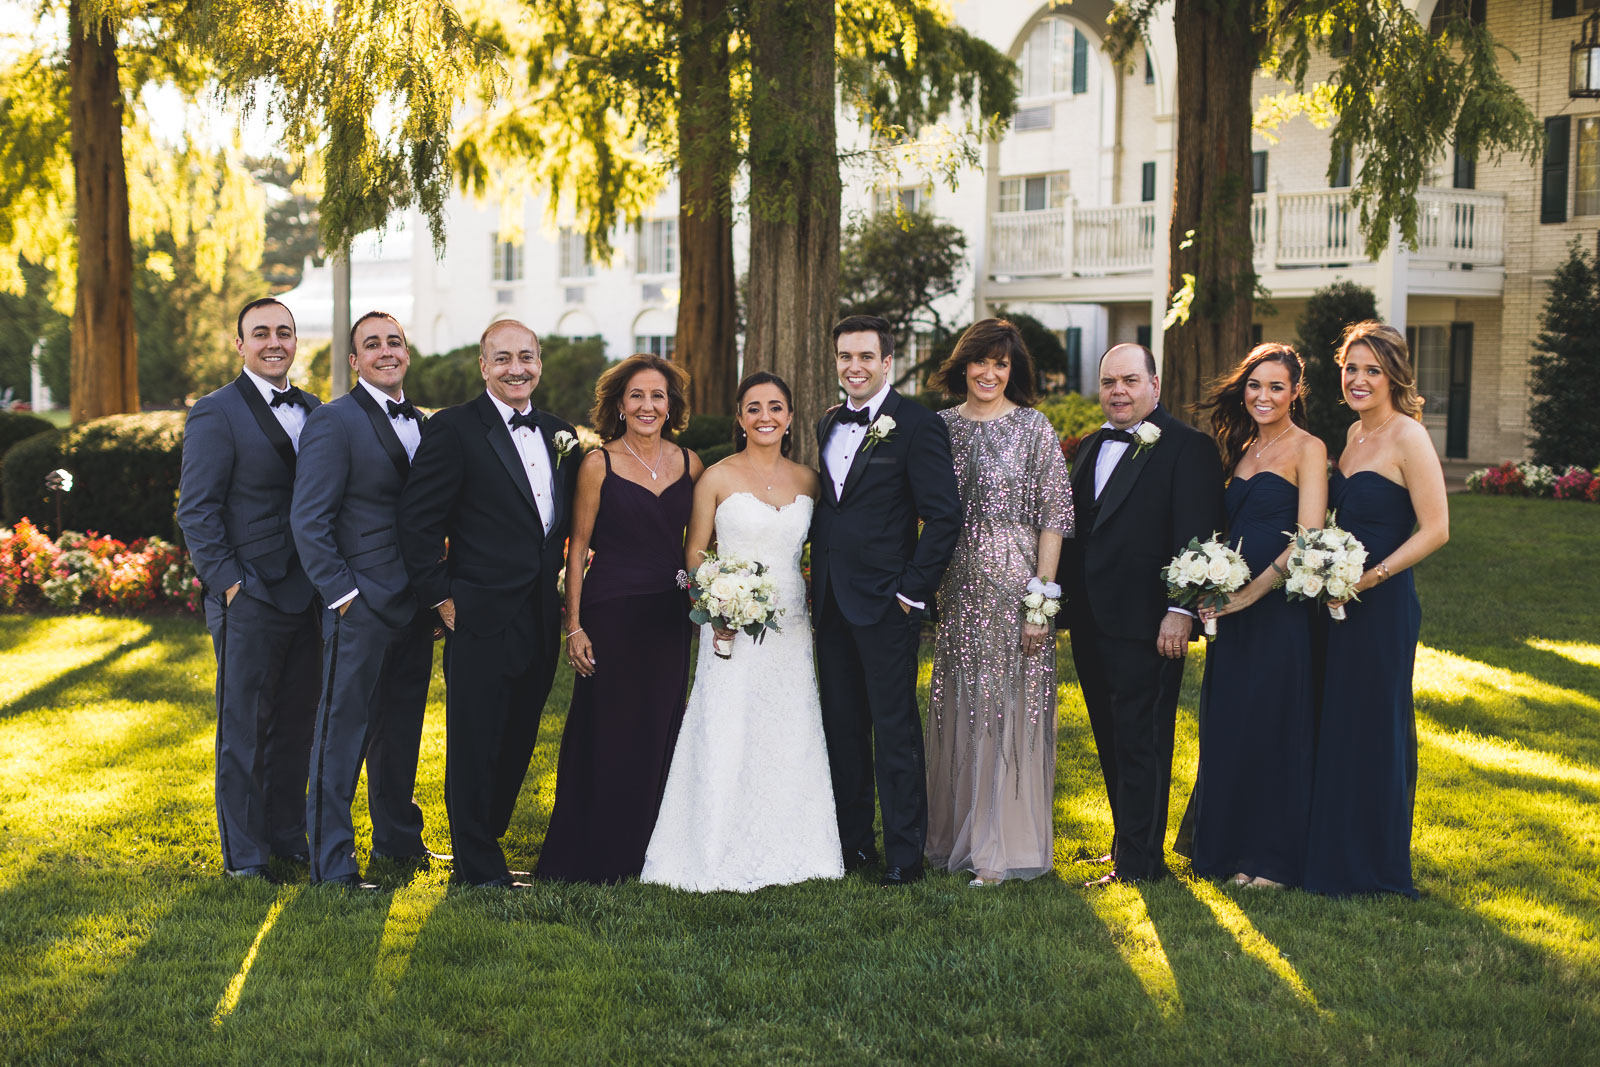 Family Formal Portraits at The Madison Hotel